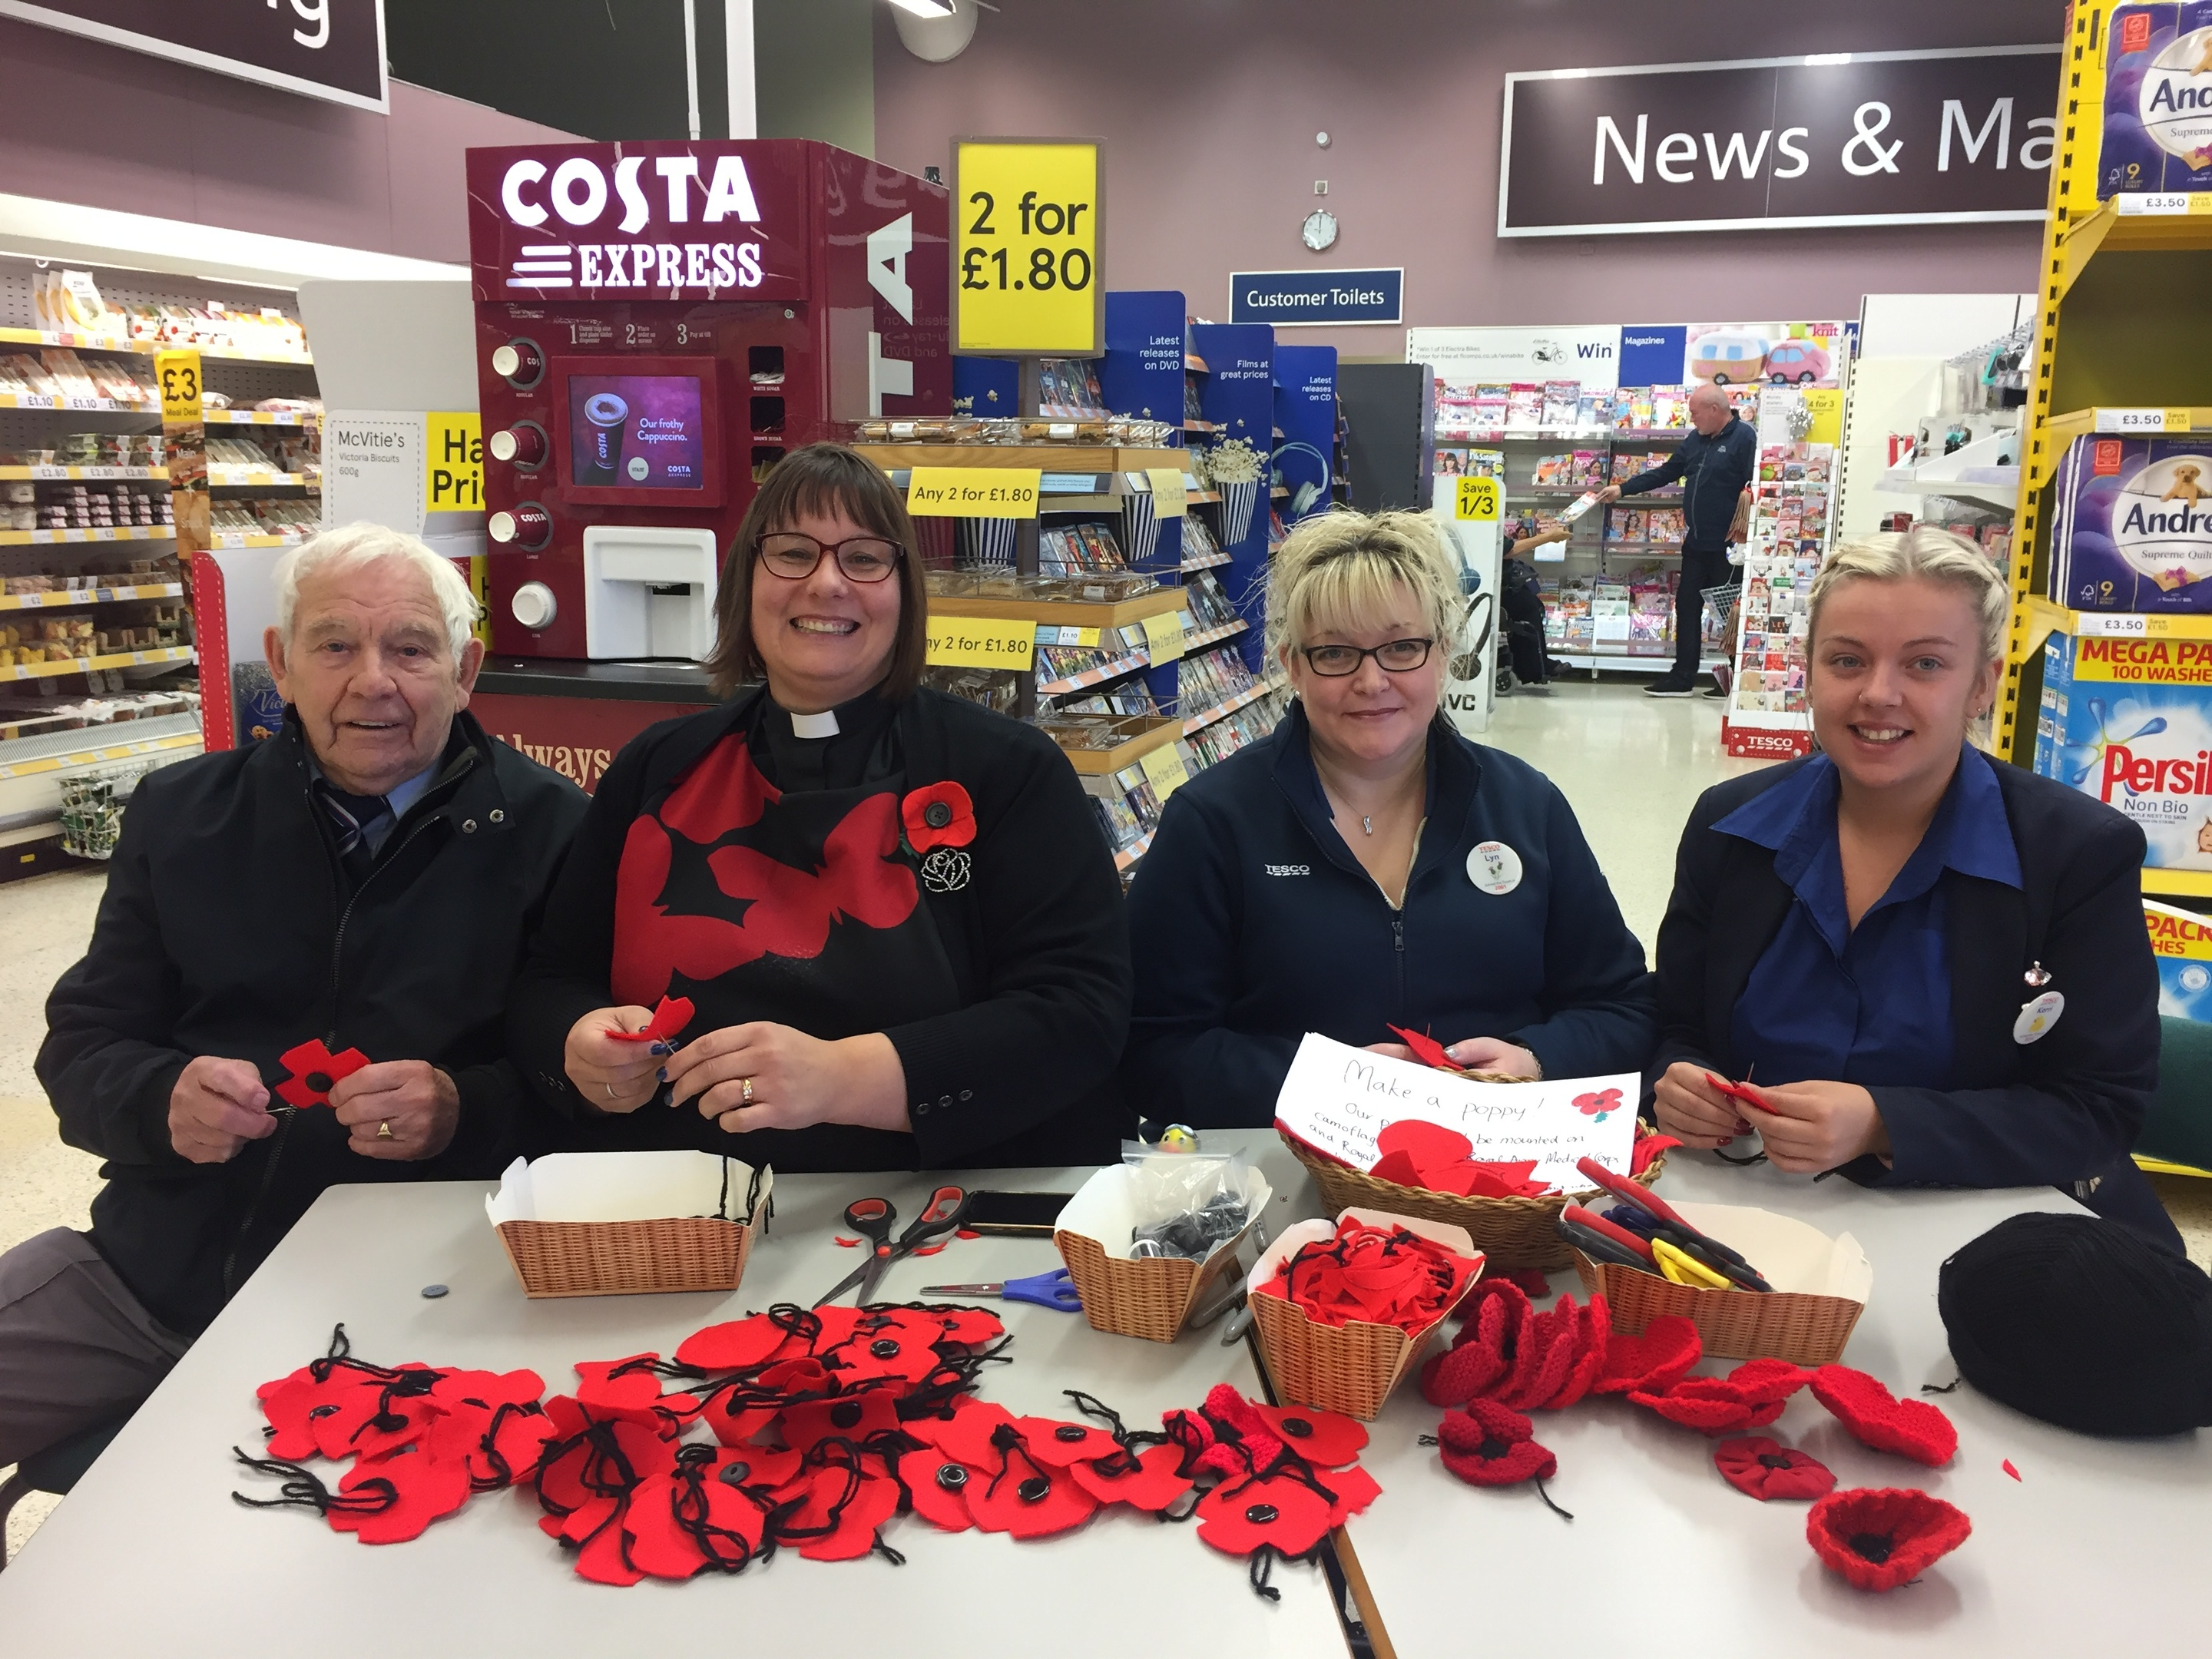 Making poppies at the Forfar Tesco store are, from left, Mike Smith of the Forfar Branch of the Royal Air Forces Association, the Rev Maggie Hunt, Lyn Archer and Kerri Myles.